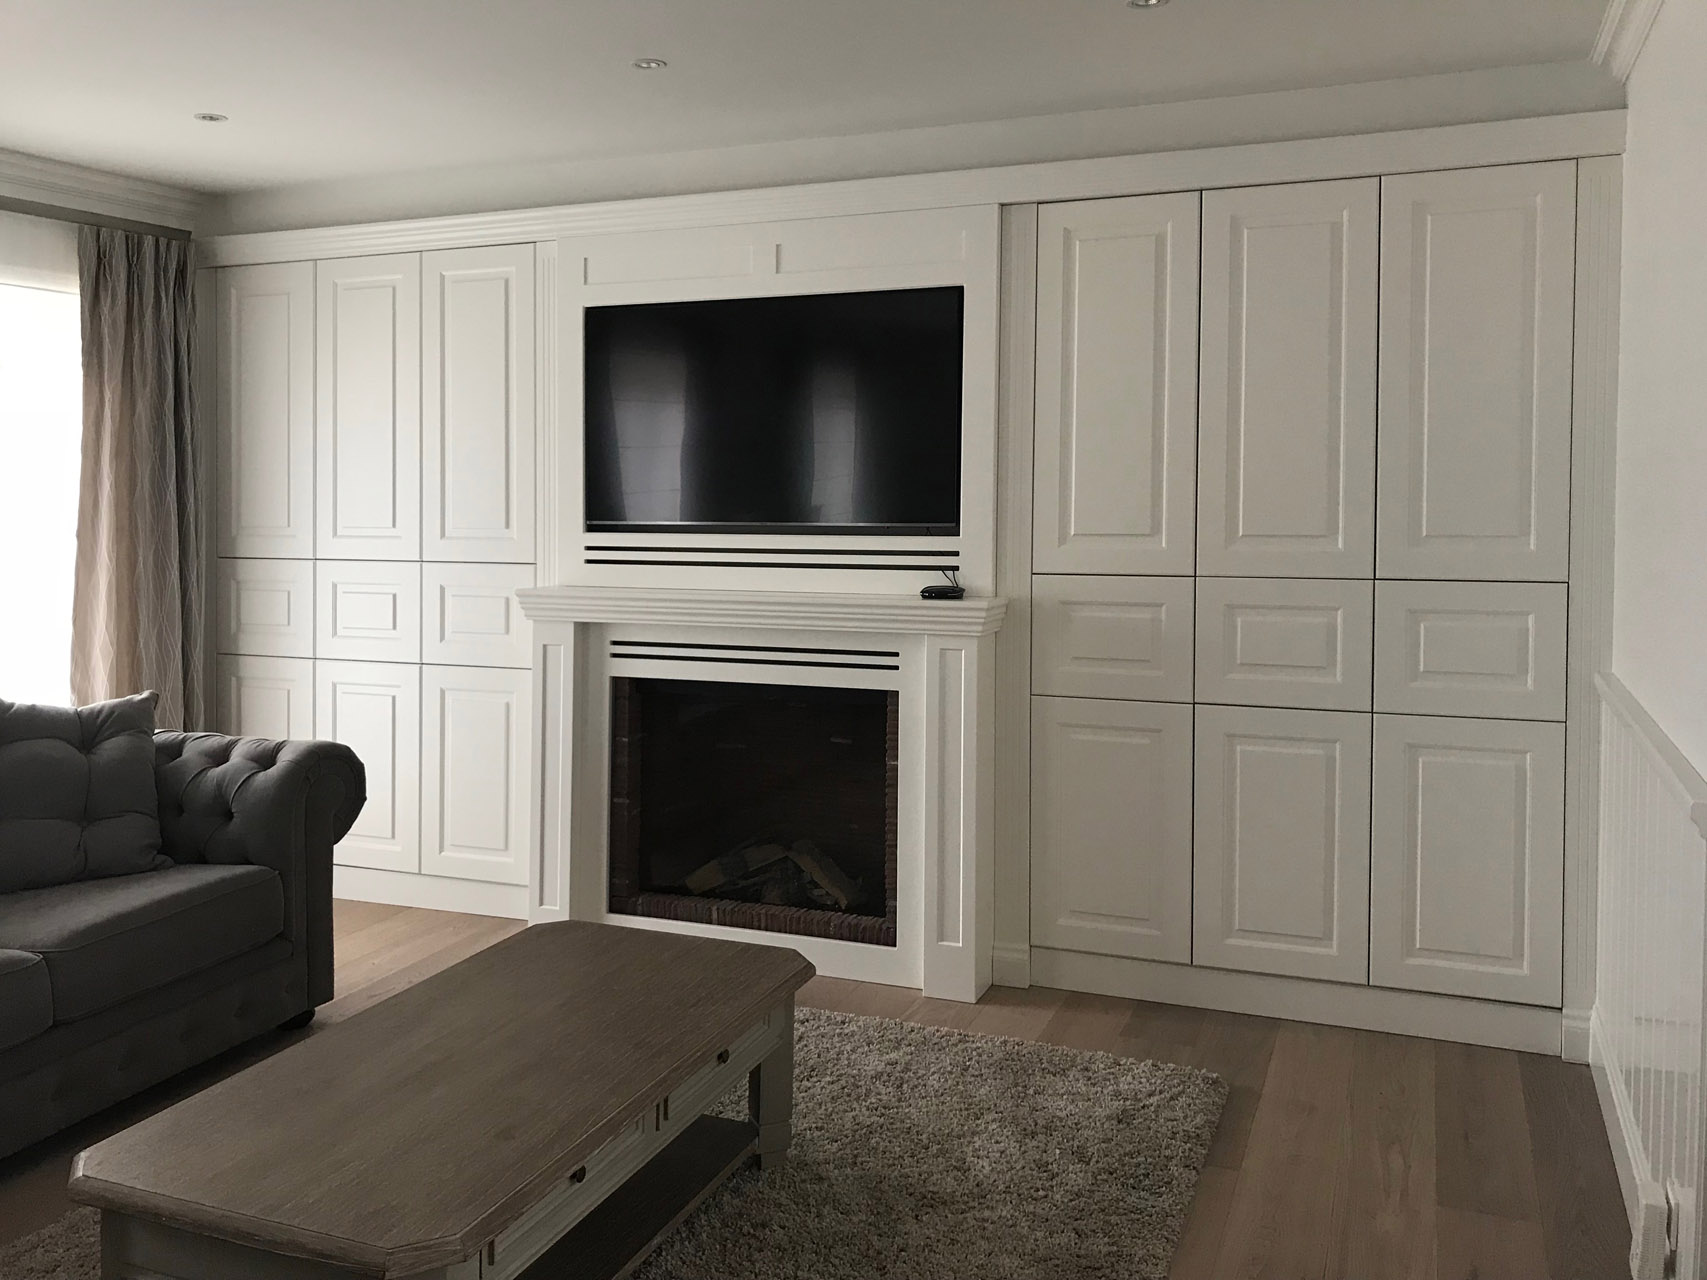 Complete renovation in Temse - Marcotte Style